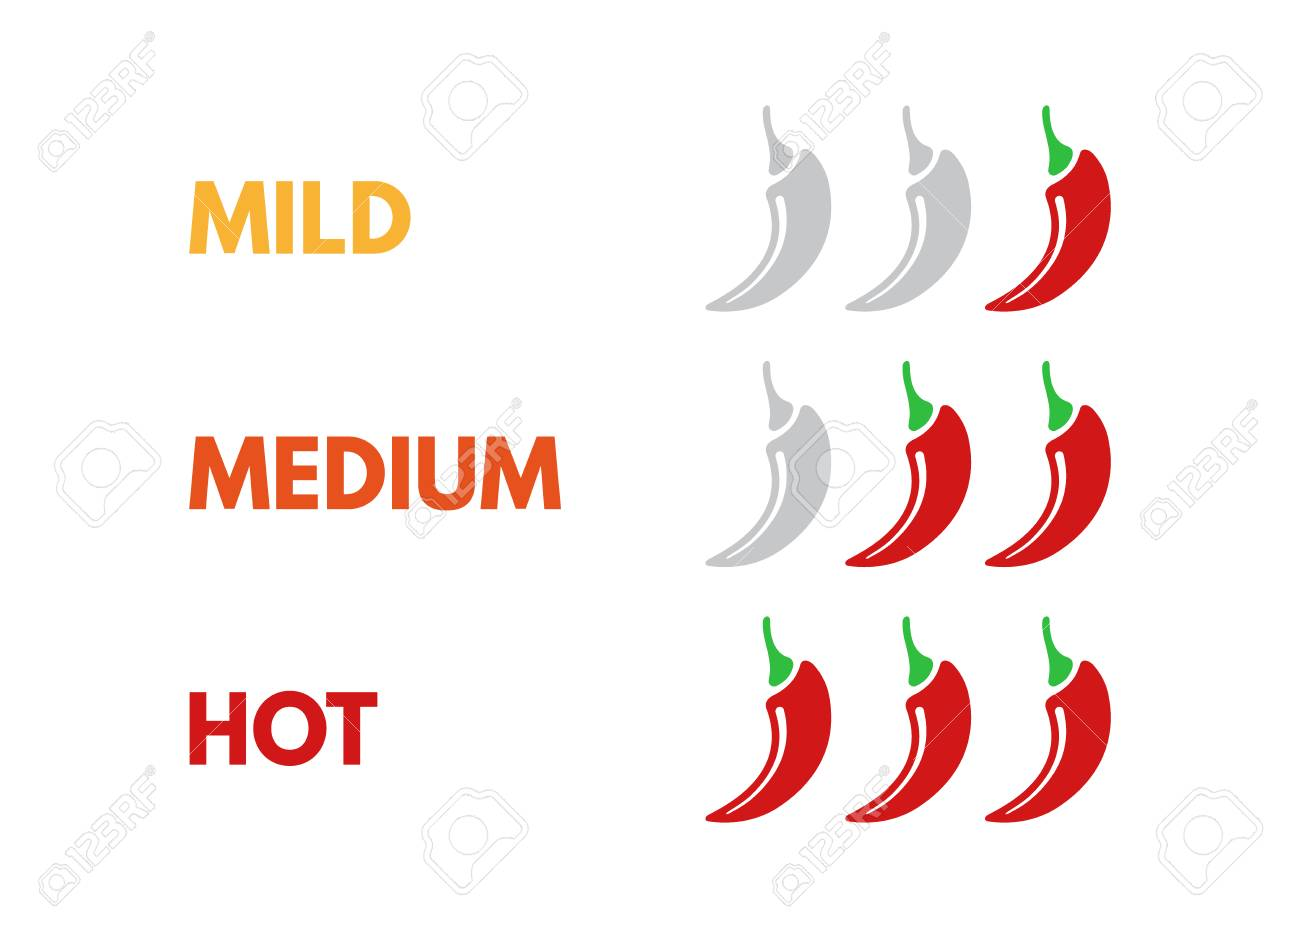 Set of hot red pepper strength scale. Indicator with mild, medium and hot icon positions isolated on white background. Spicy vegetables, delicious dietary product. - 110070579